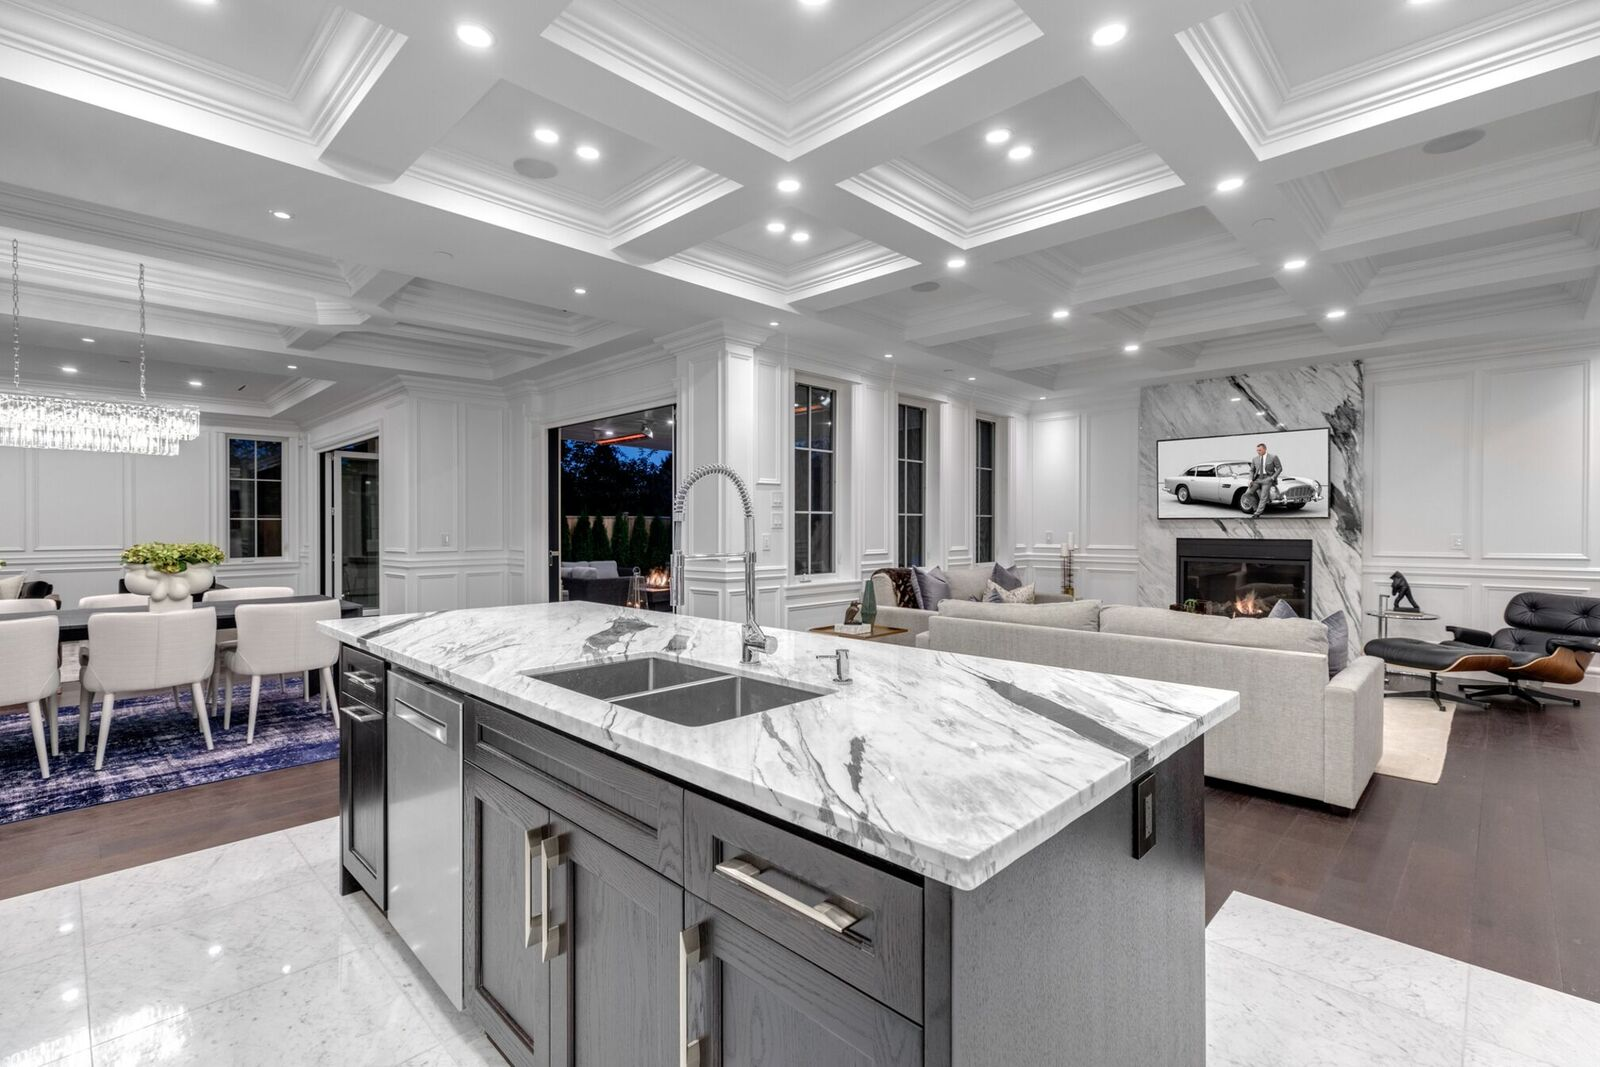 New York Marble Kitchen